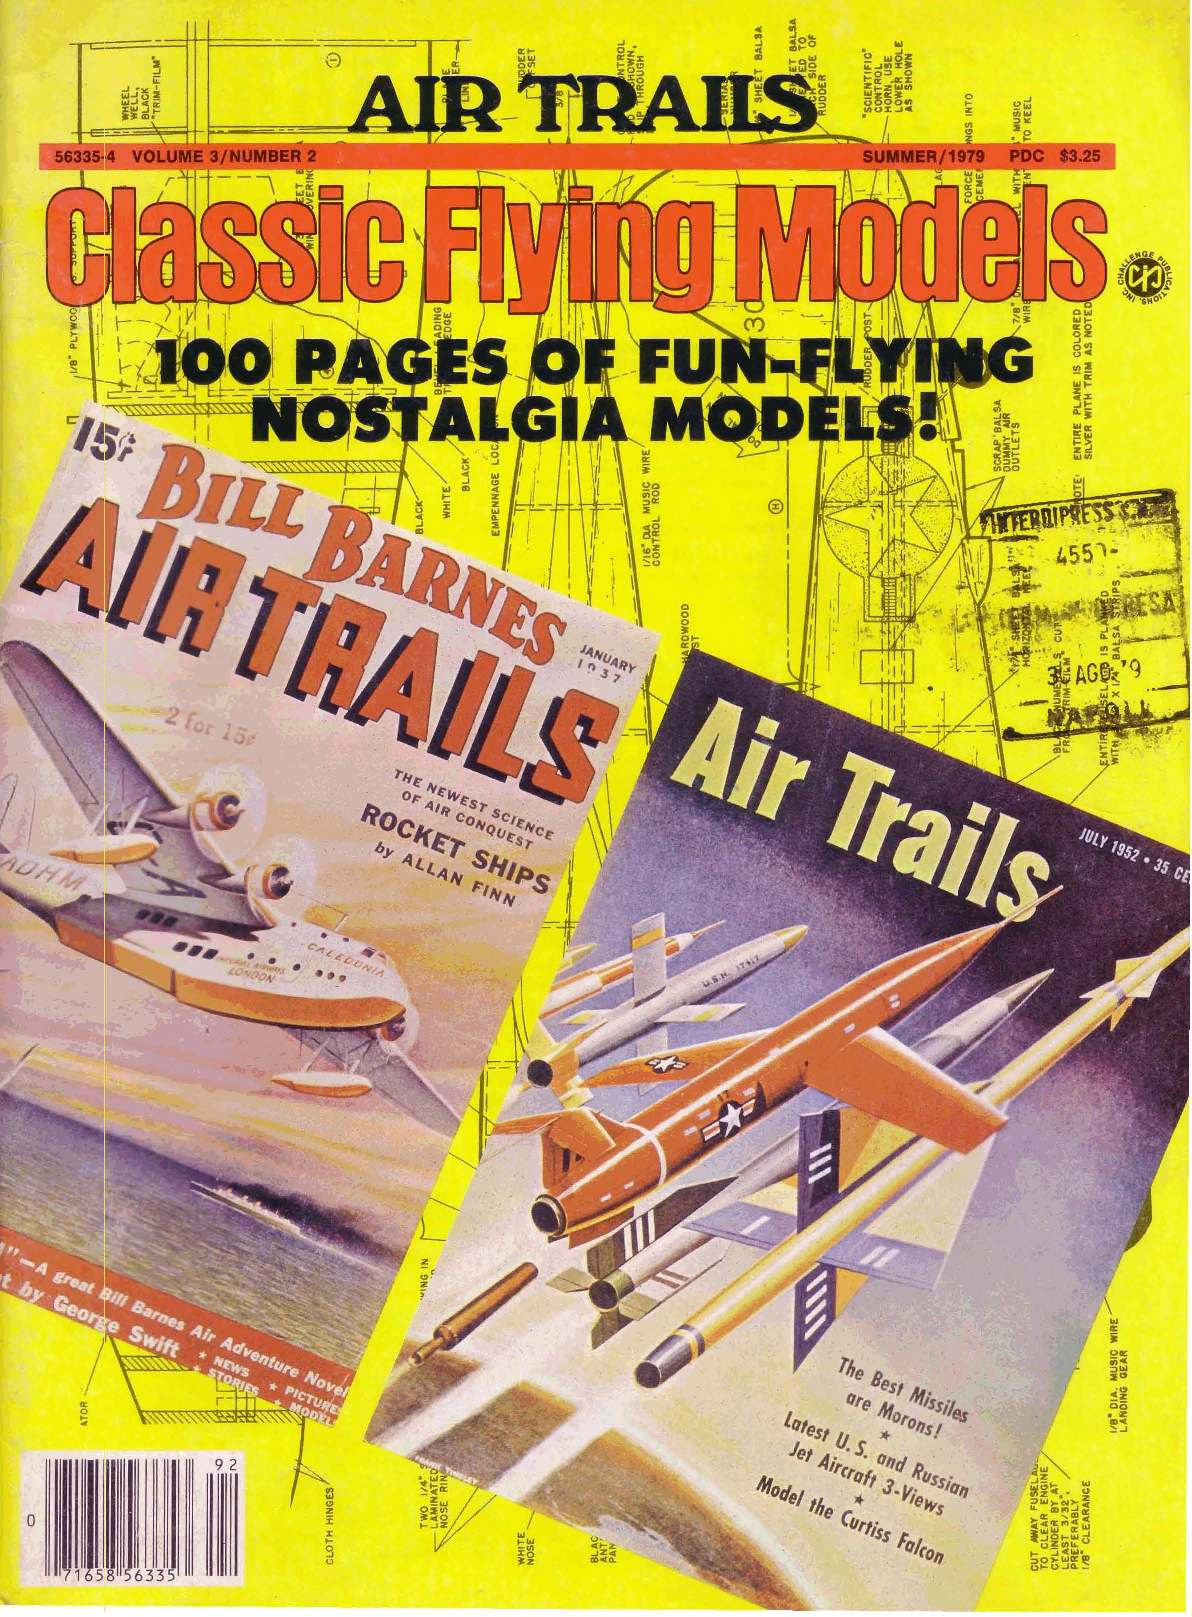 AirTrails_Classic_flying_models_summer1979.jpg